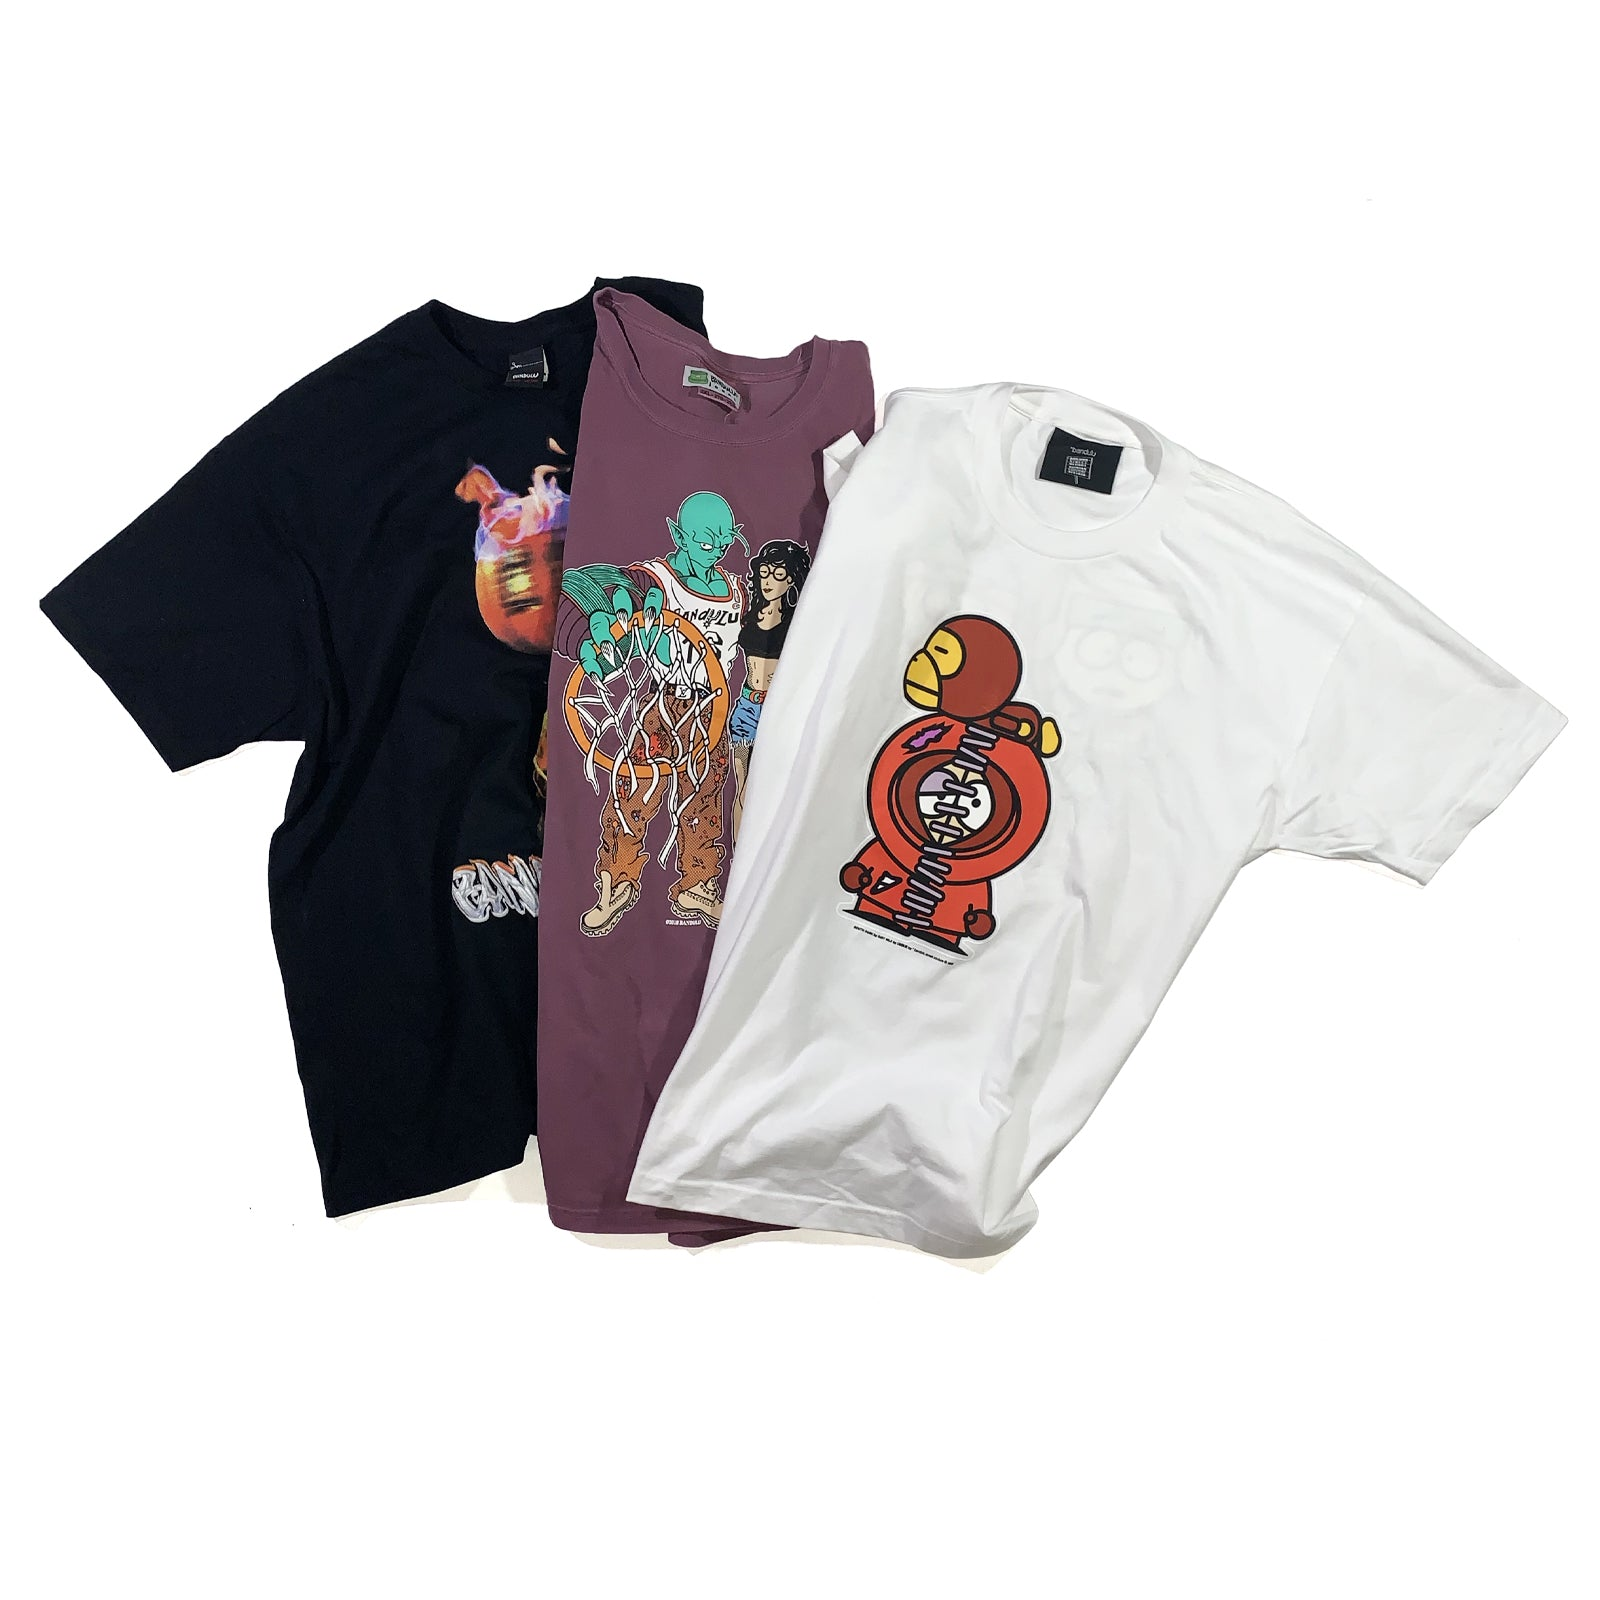 "BANDULU "" ARCHIVE "" 3 TEE GIFT PACK SMALL"